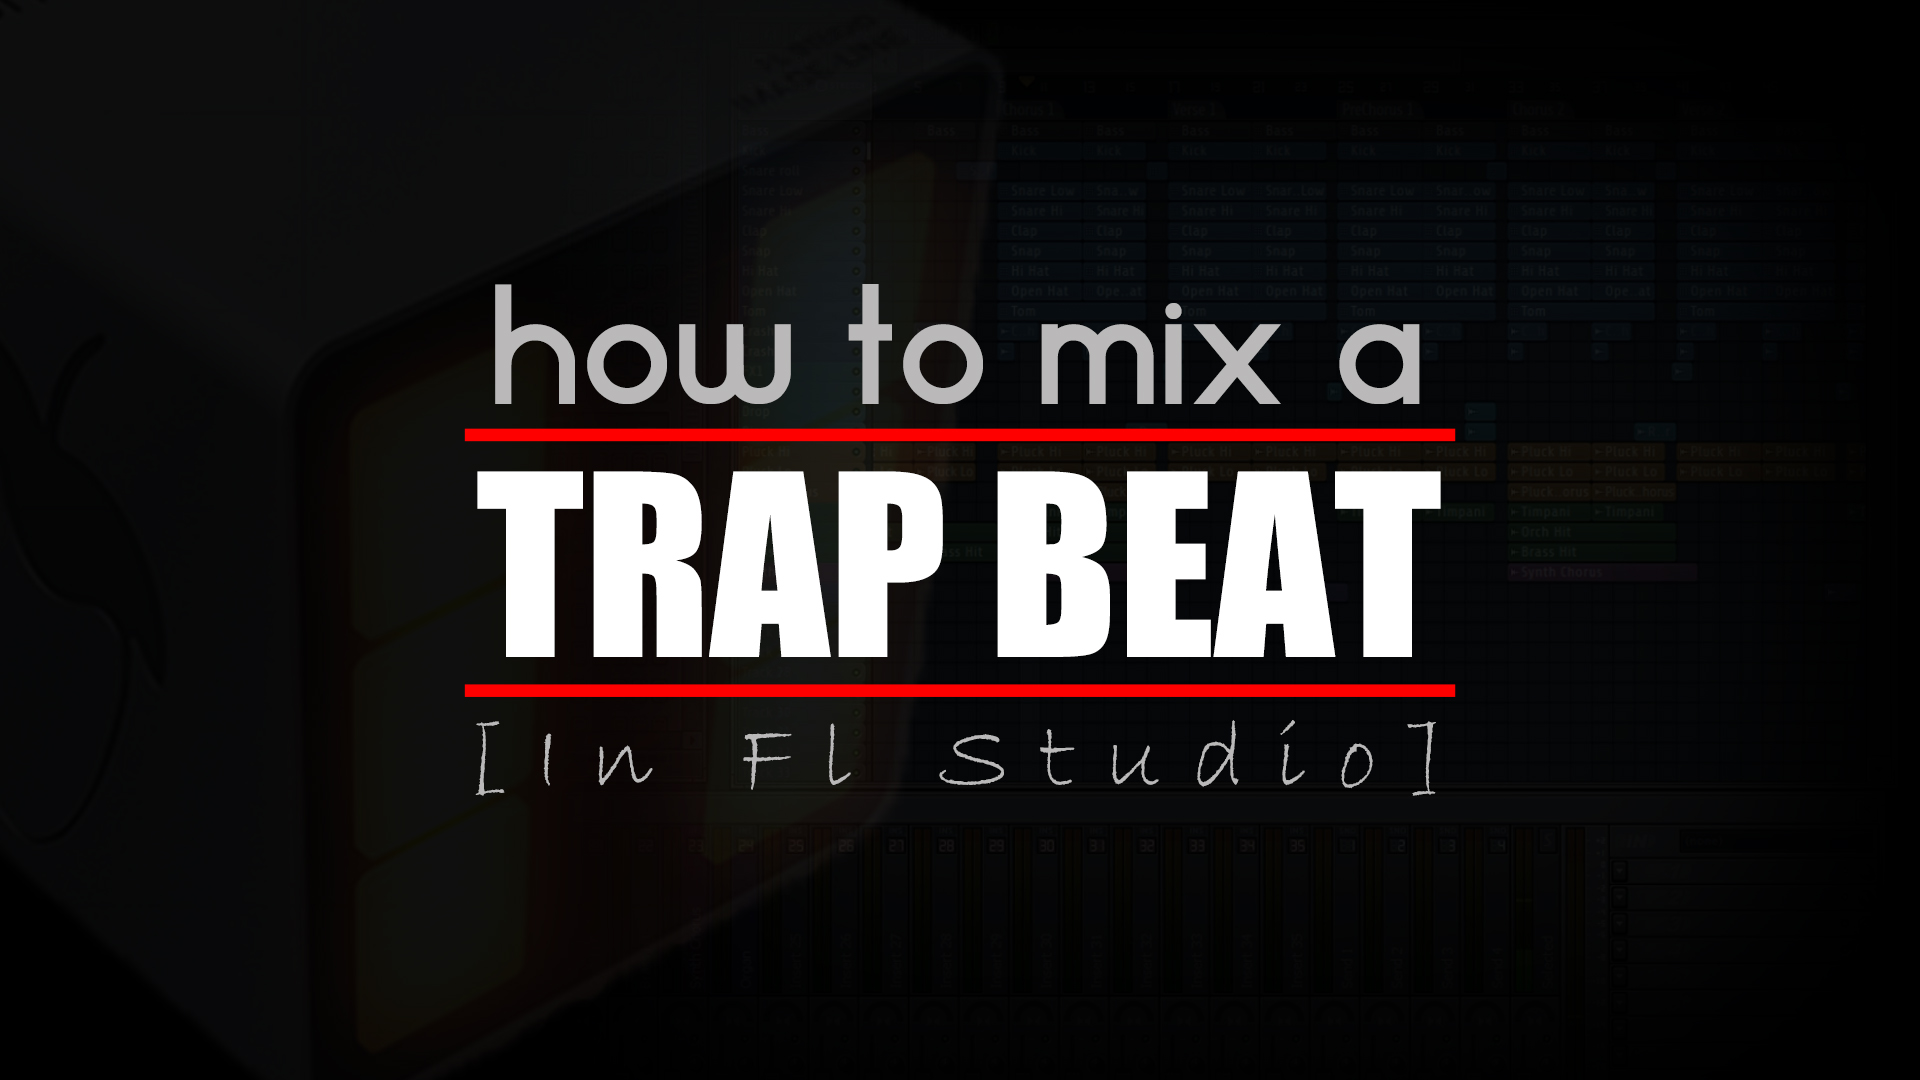 How to Mix a Trap Beat